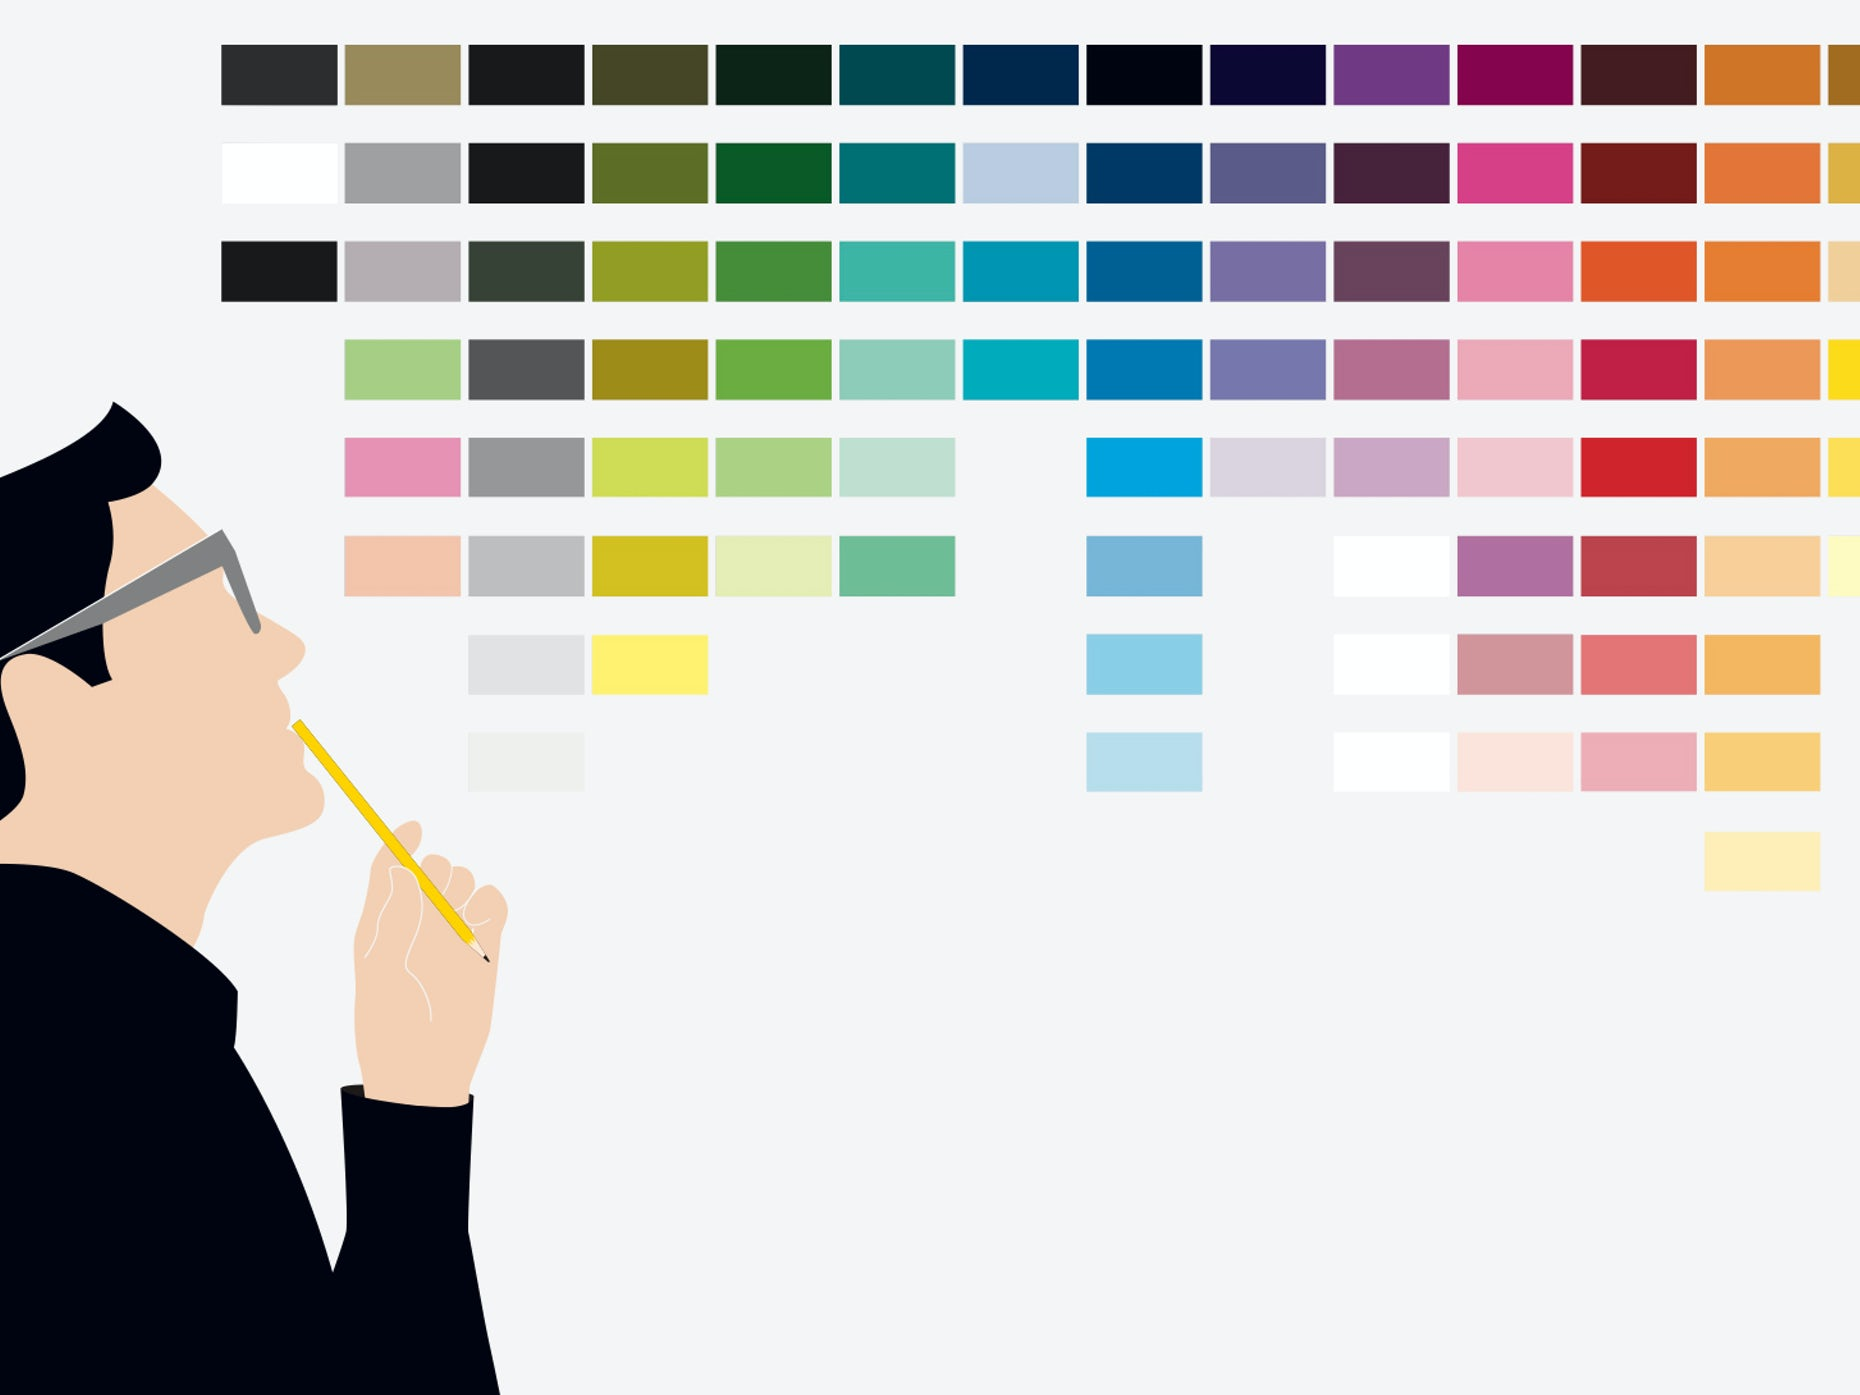 Color meanings and the art of using color symbolism - 99designs